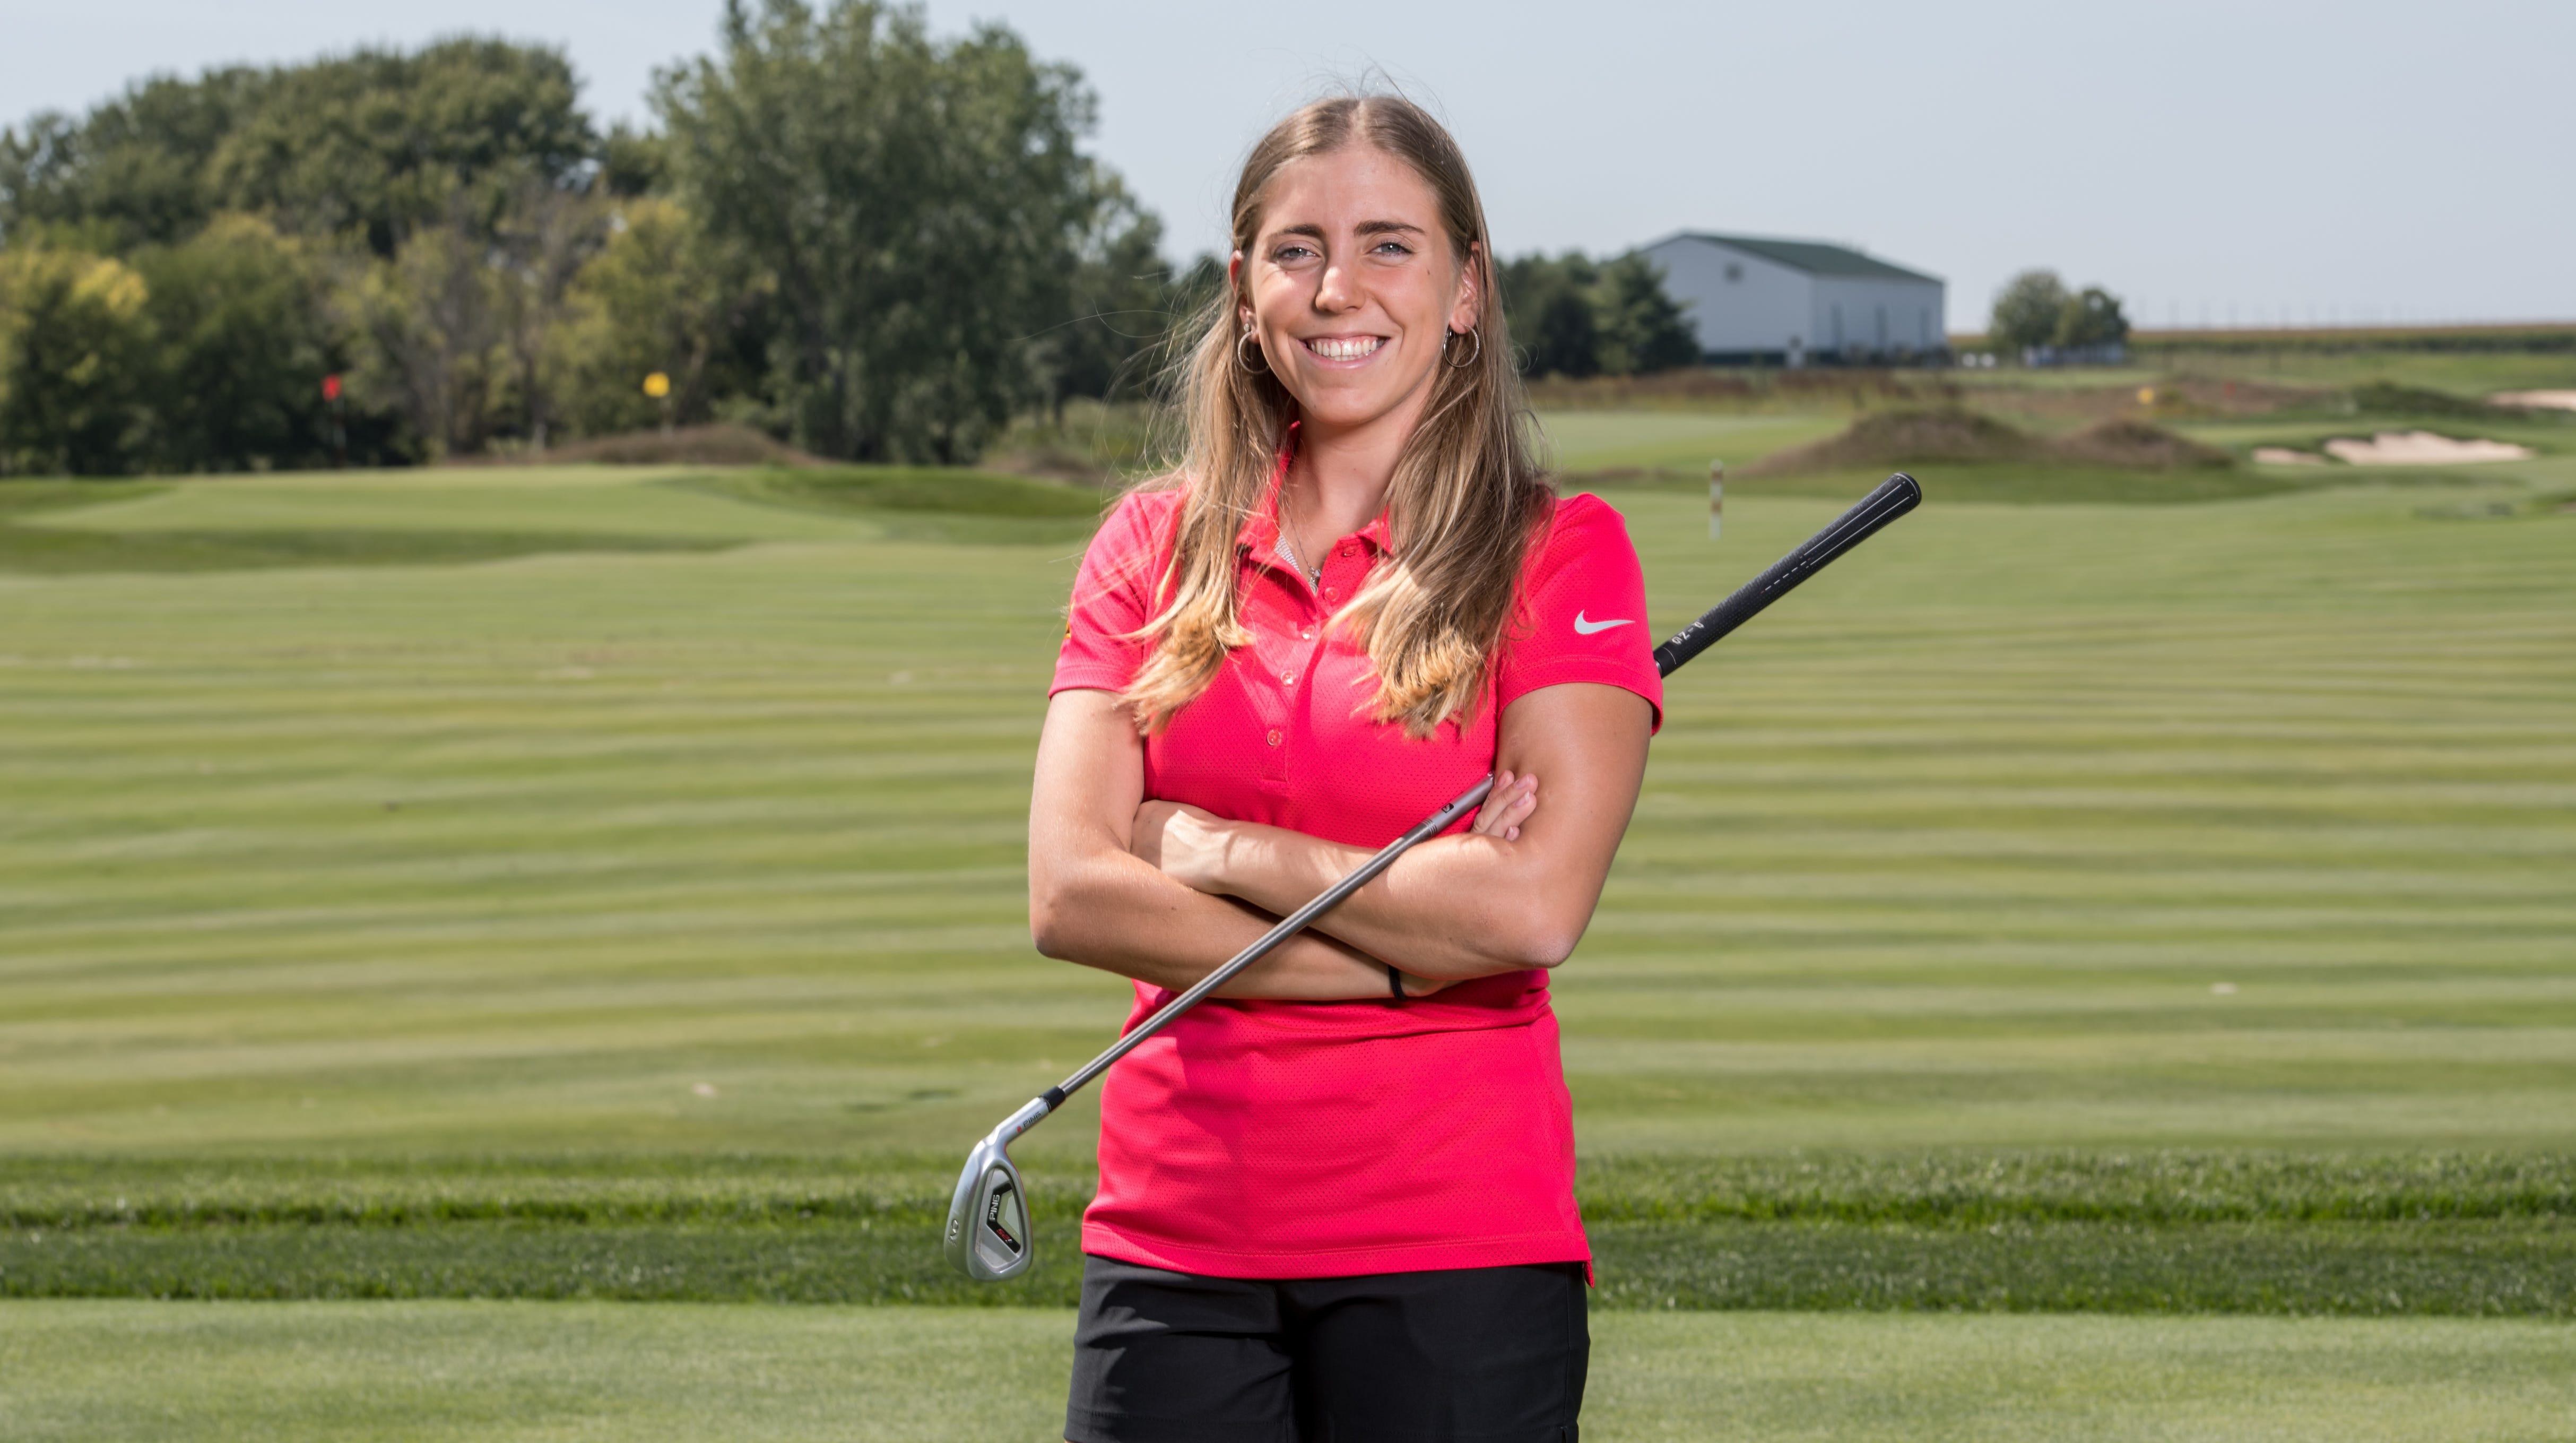 Slain Iowa State golfer Celia Barquin Arozamena had large aspirations, those who knew her say